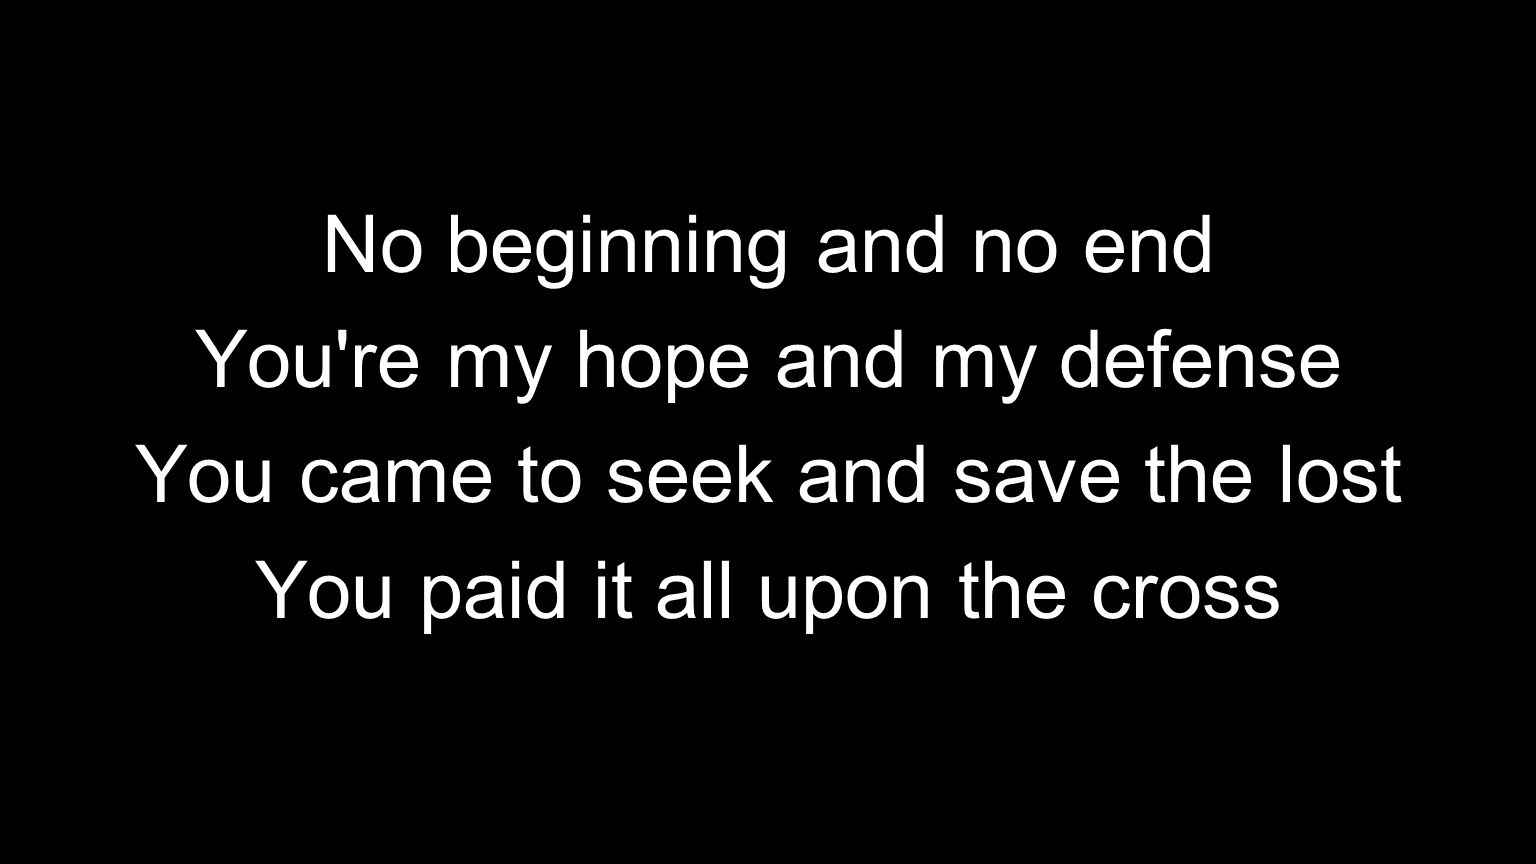 You re my hope and my defense You came to seek and save the lost